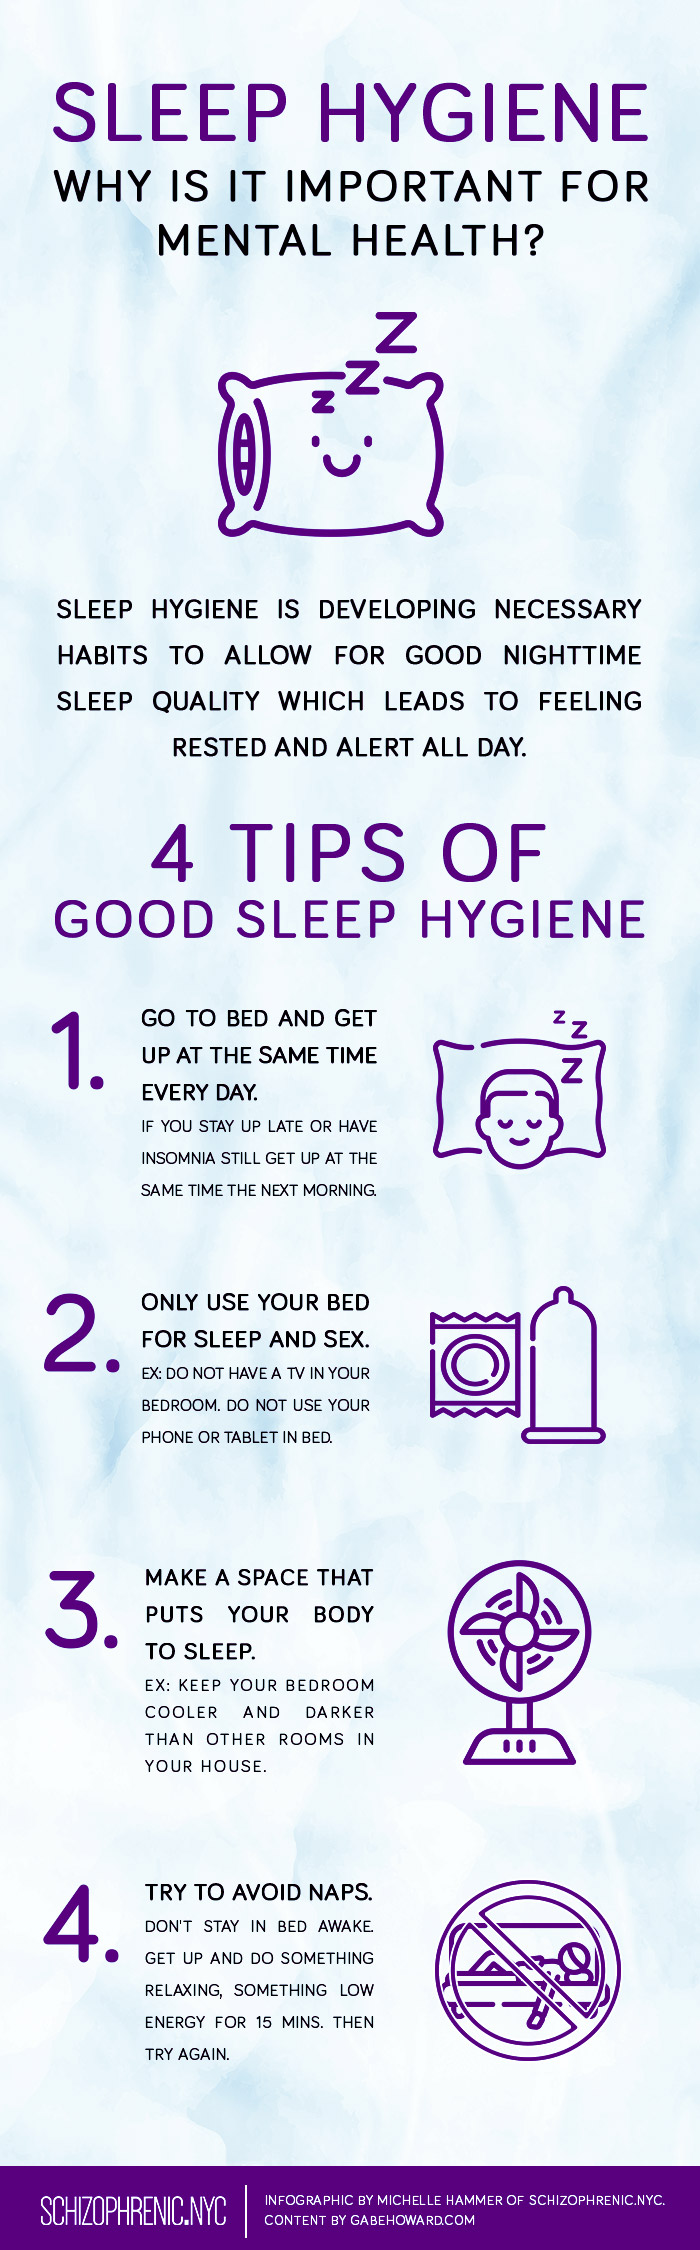 4 Sleep Hygiene Techniques. Why Is It Important For Mental Health? 2